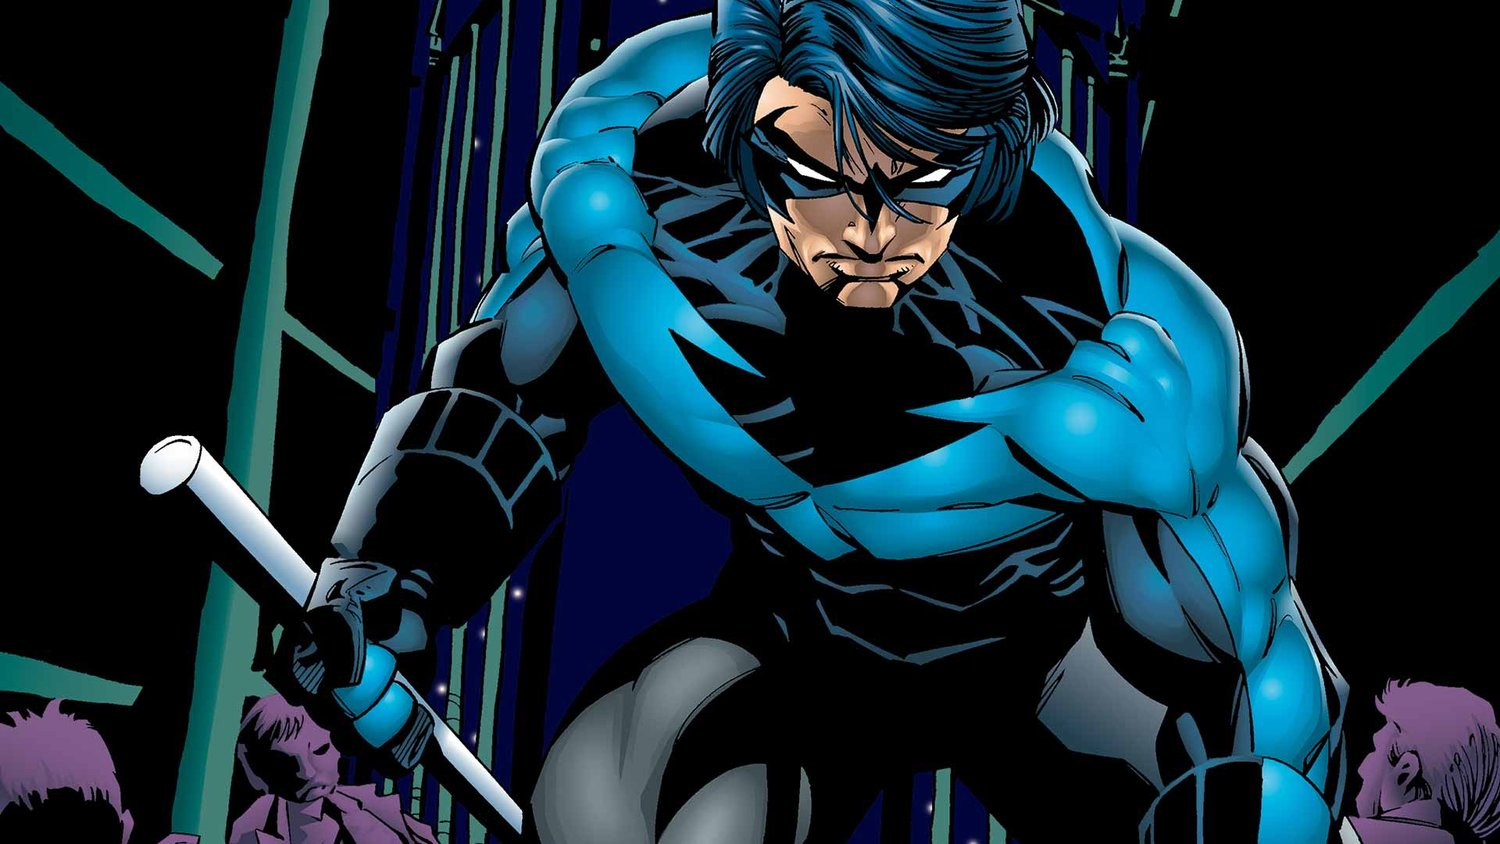 Why NIGHTWING Will Make a Great Movie According to Director Chris McKay